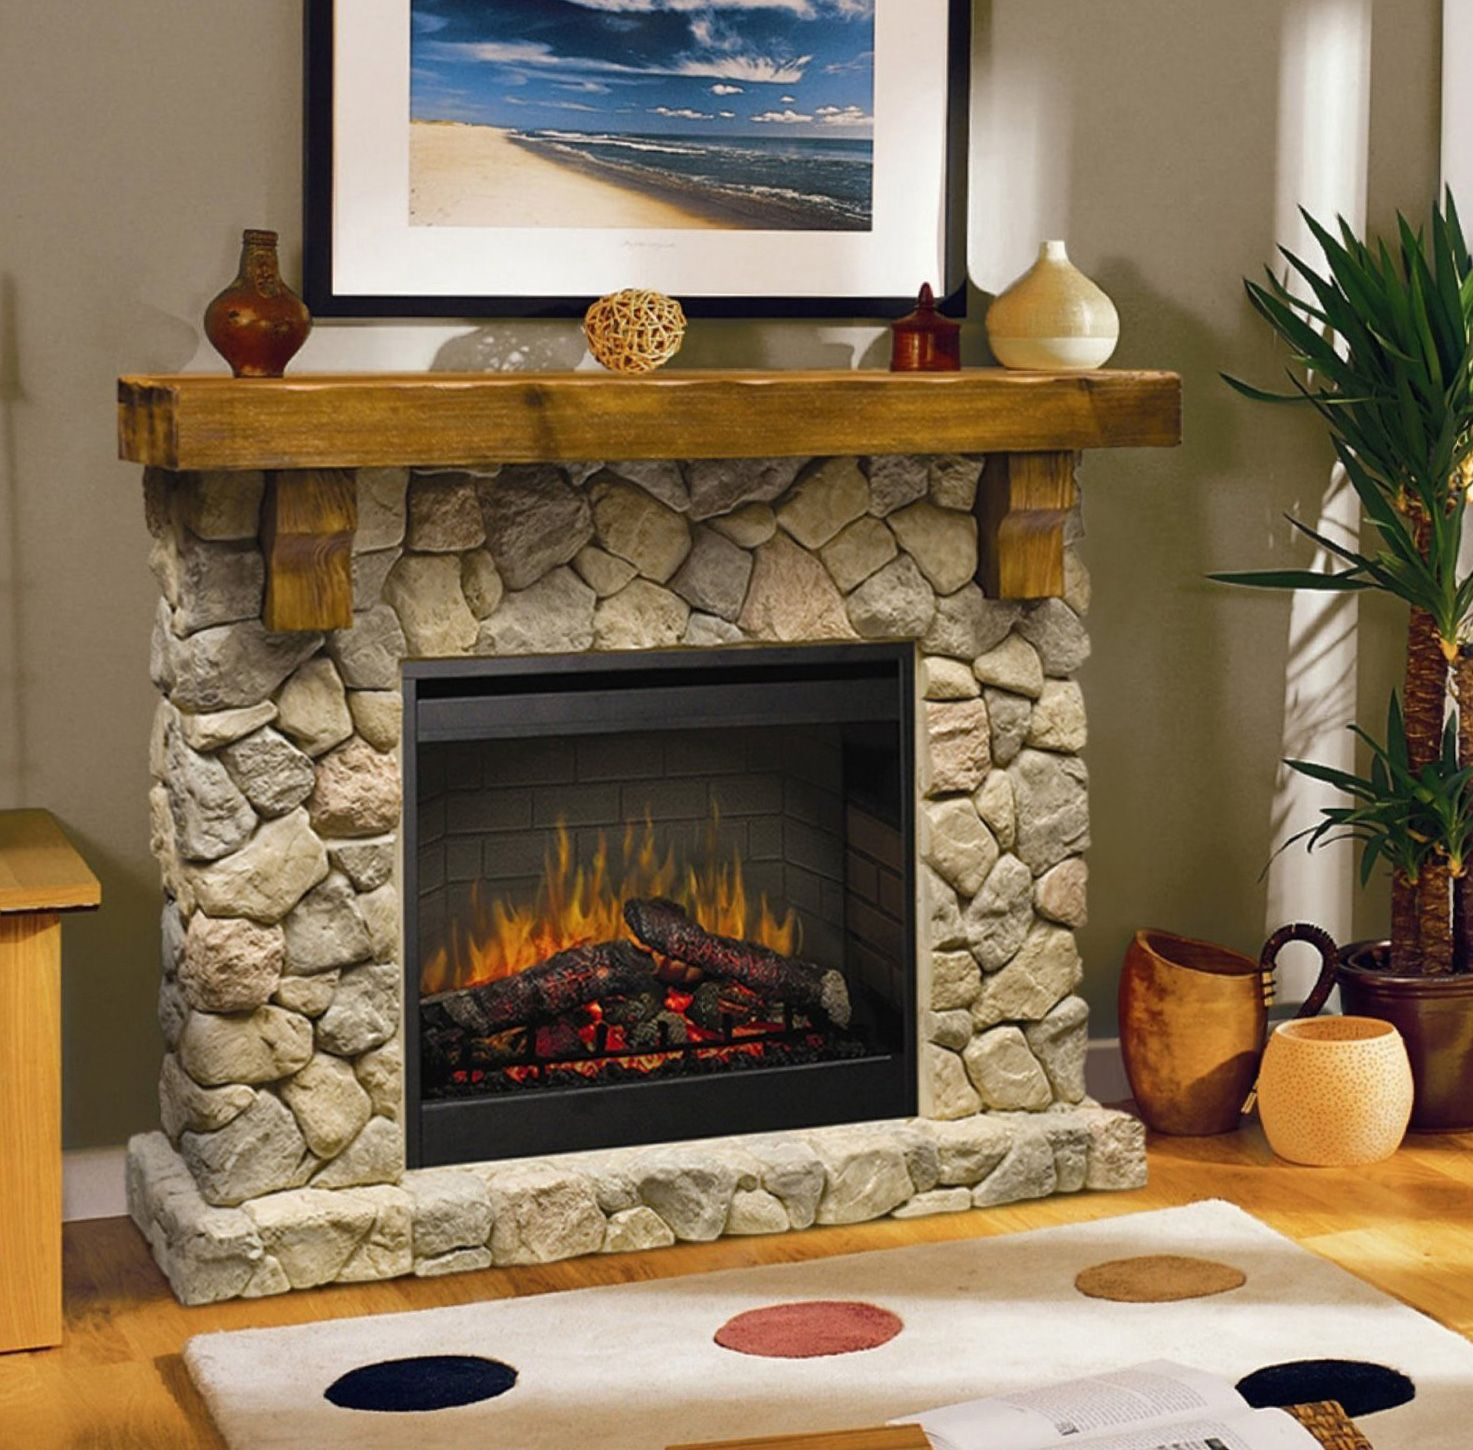 Fireplace Surround Design Ideas fireplace mantel surround designs Northern Stoneworks Designs And Manufactures Custom Stone Fireplace Mantels And Surrounds Designed For The Architectural